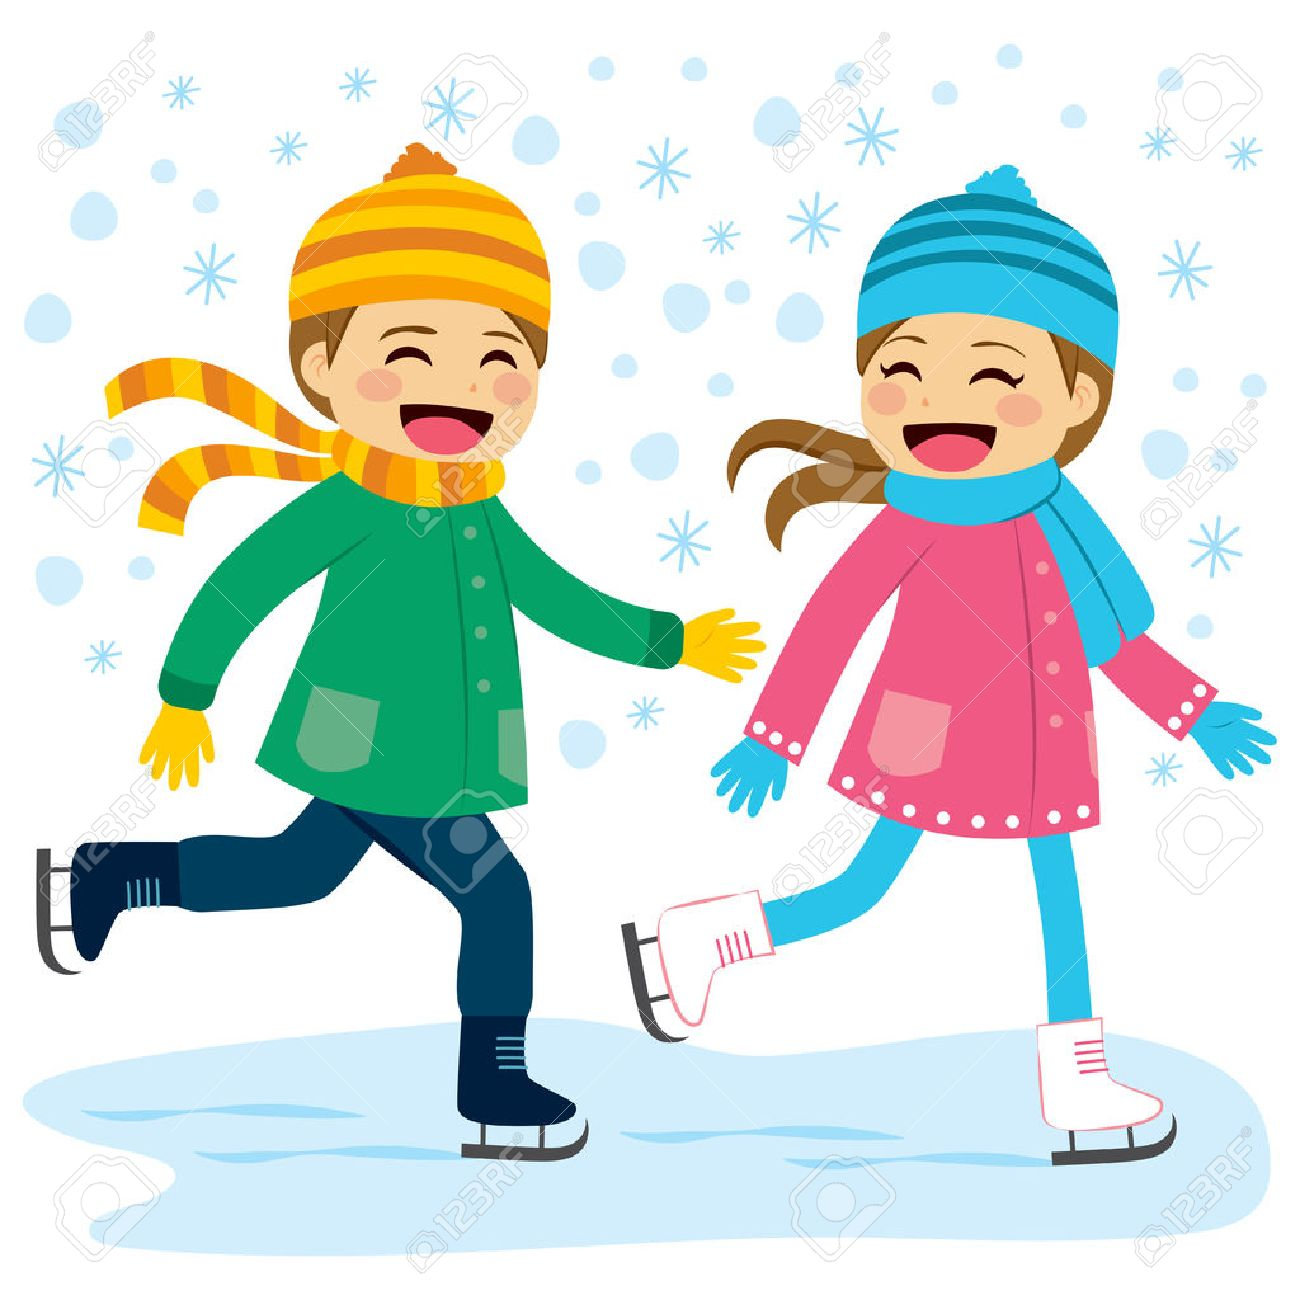 cute boy and girl wearing warm winter clothes ice skating together rh 123rf com